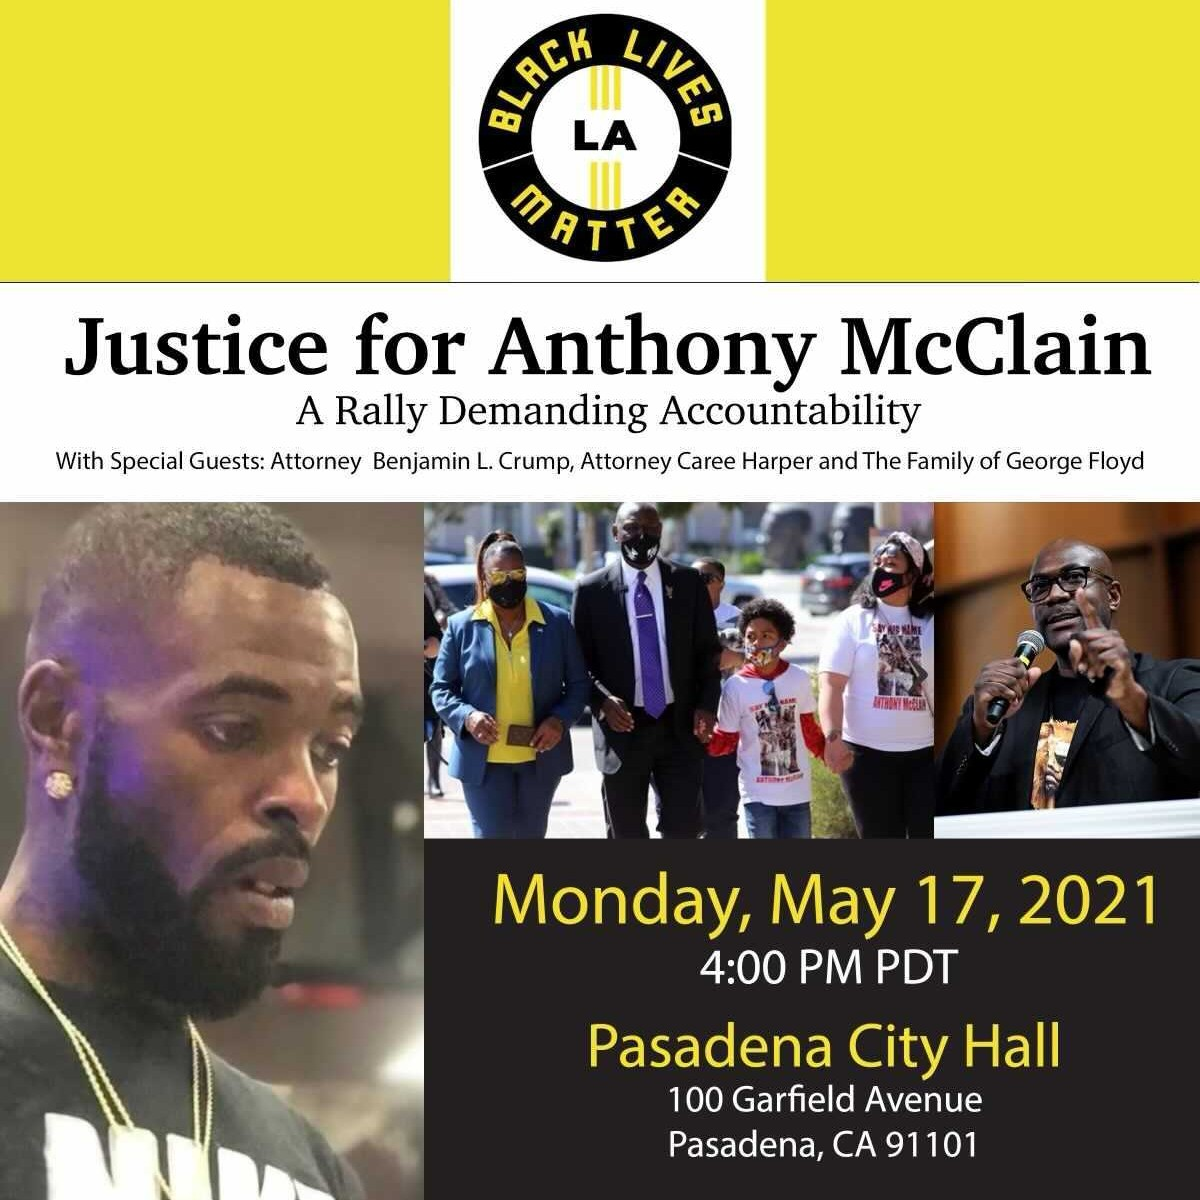 Join me AND surprise guests on Monday, May 17th in Pasadena, CA as we rally for justice for #AnthonyMcClain! We must hold @PasadenaPD accountable for Anthony's unjustifiable death after they shot him in the BACK! https://t.co/mbycnkJxsR